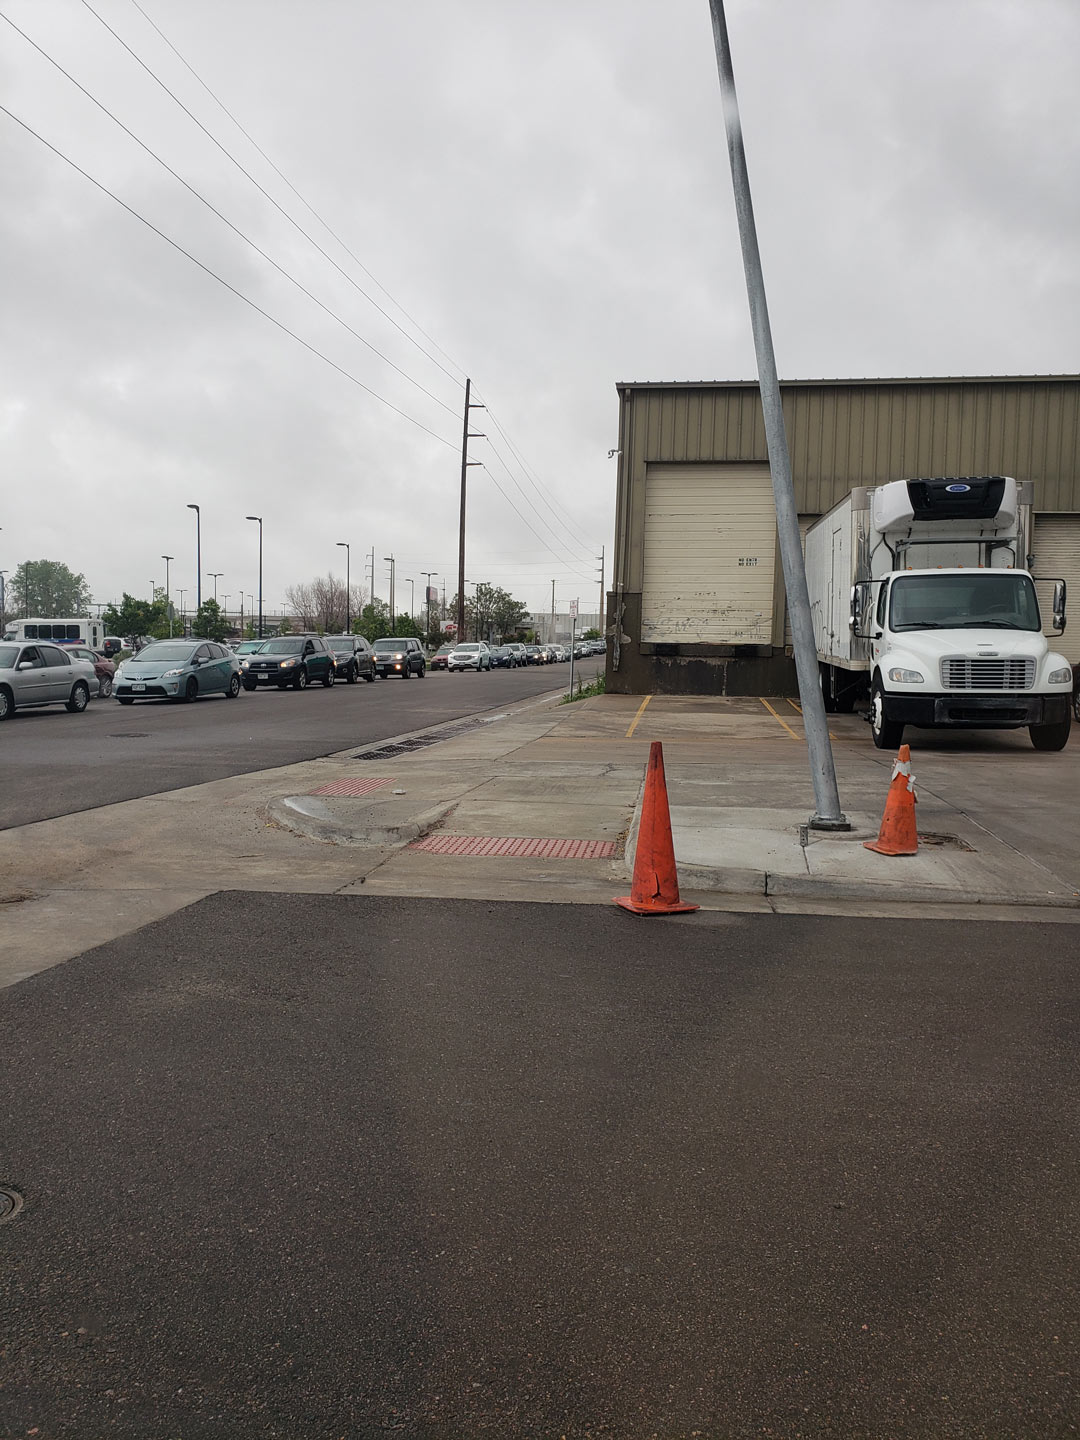 The line of cars waiting to get into the Veho warehouse on Memorial Day morning stretched more than two blocks.